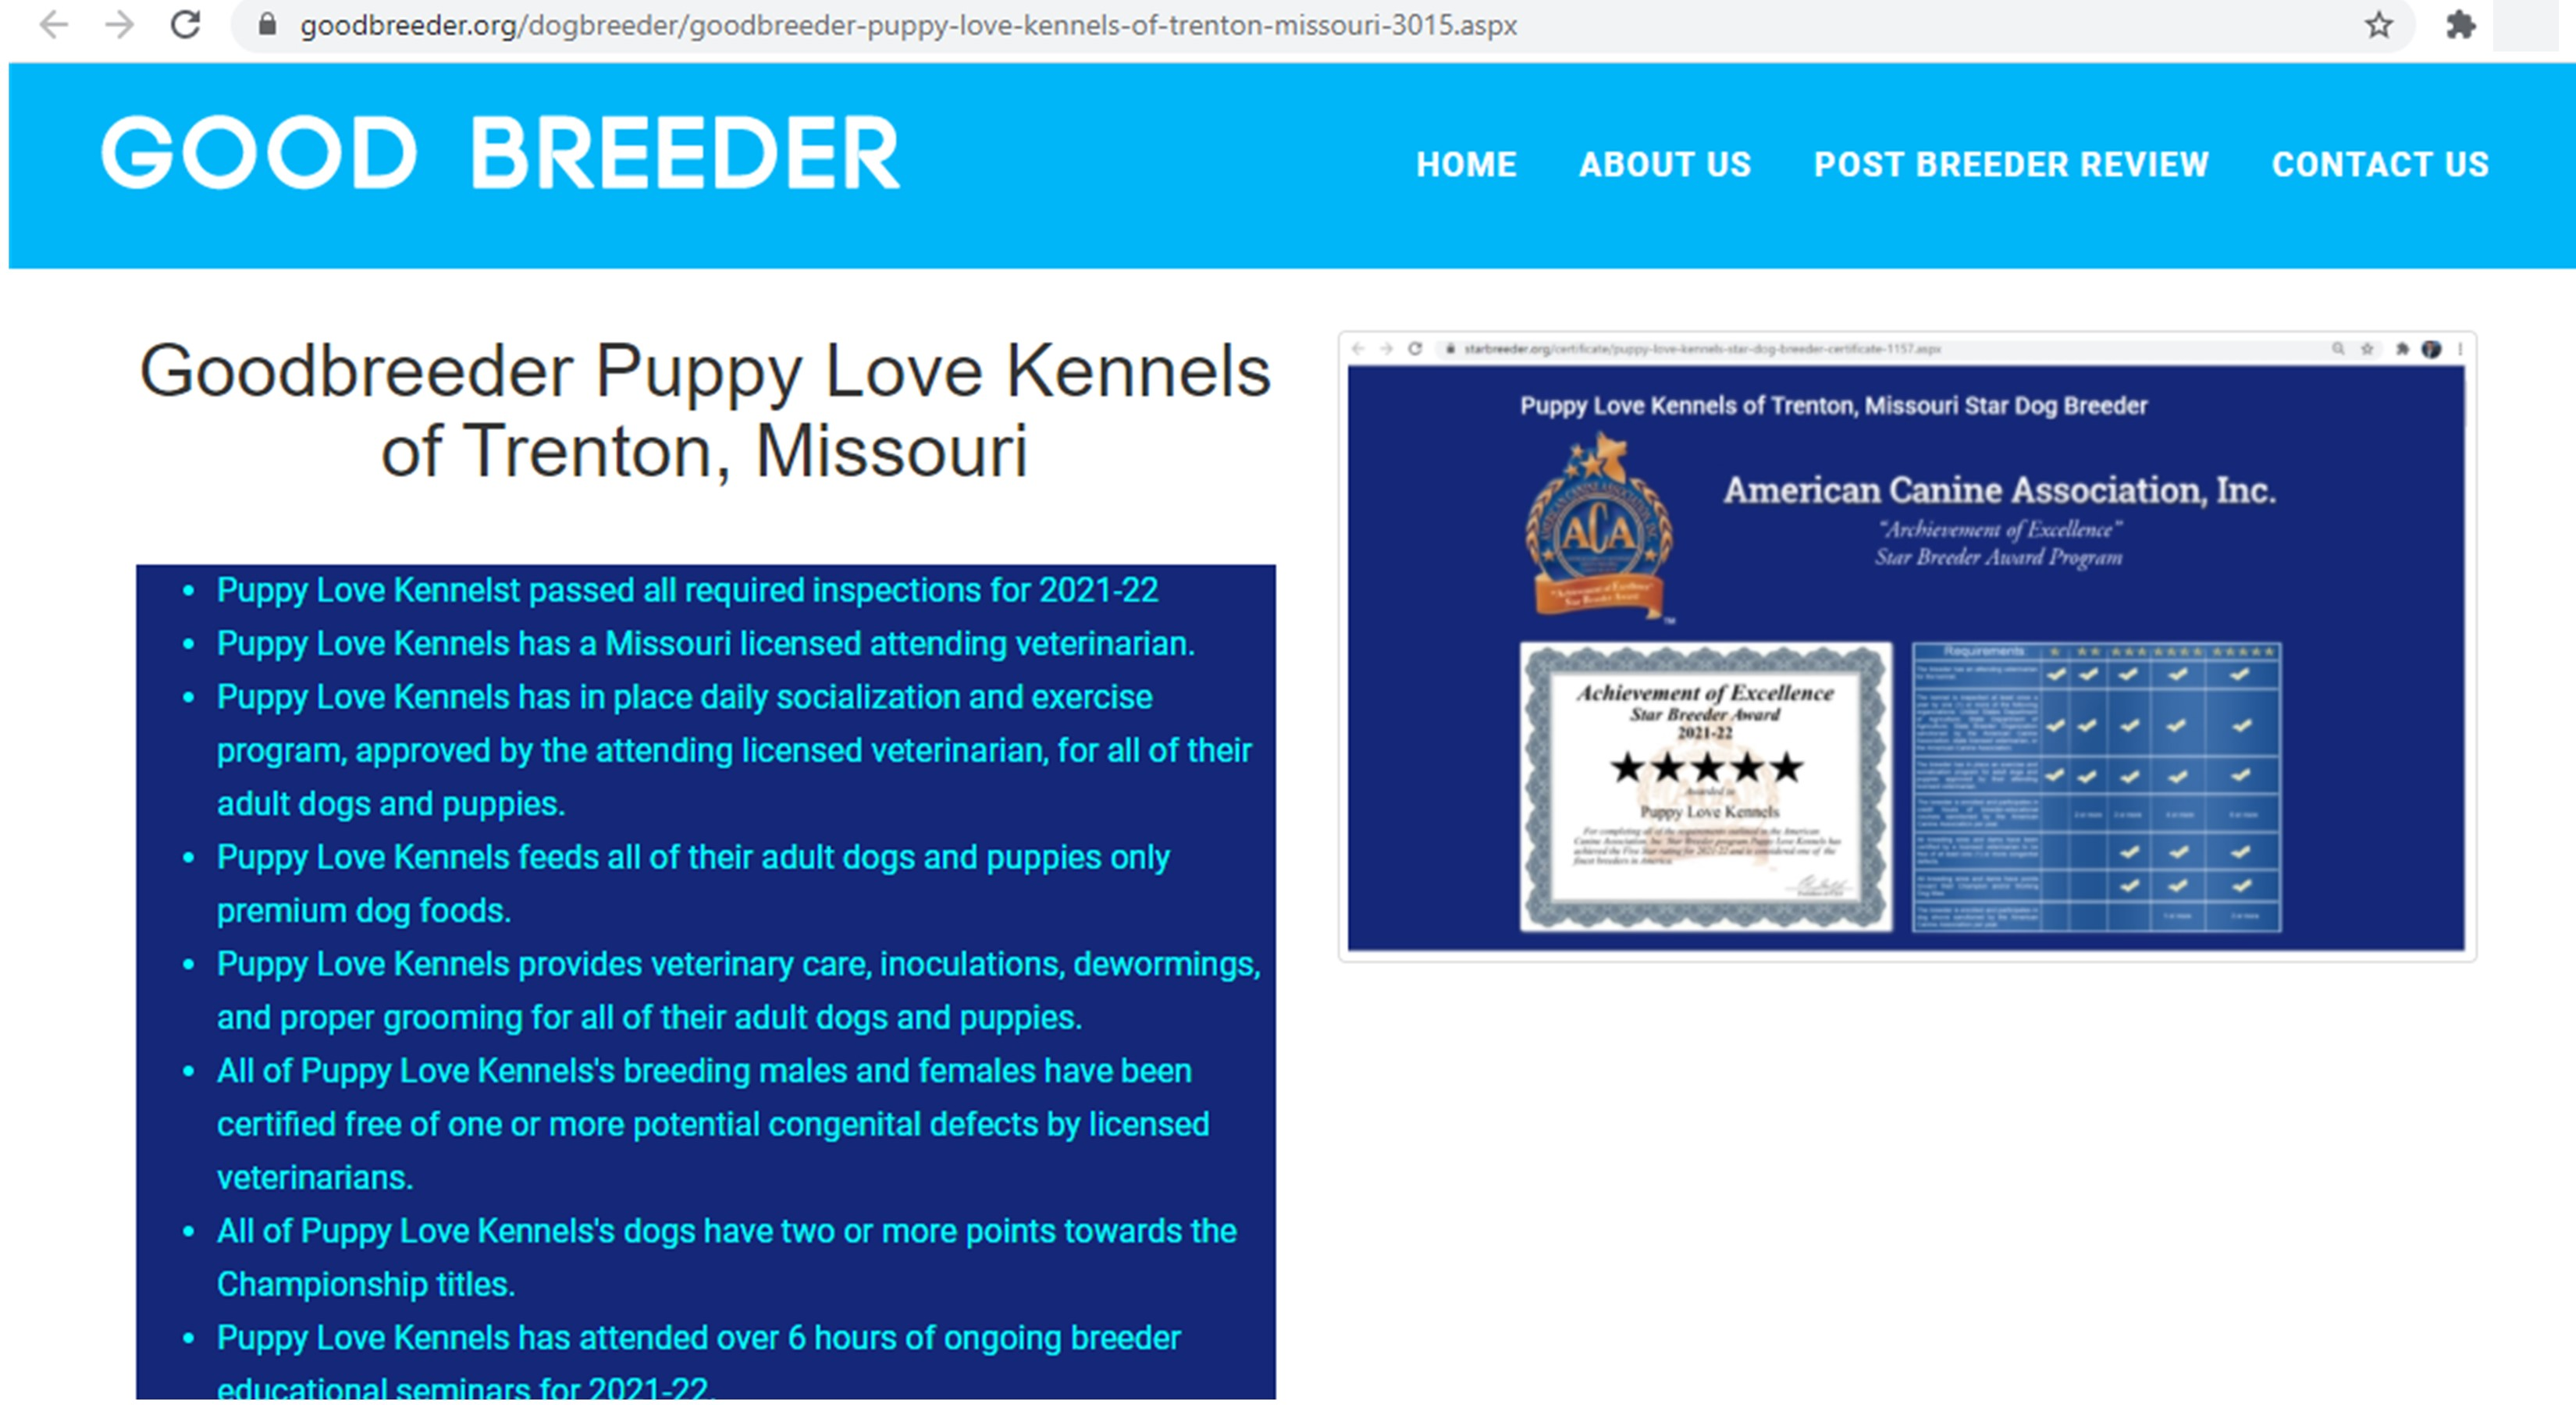 puppy, love, kennels,boodbreeder, inspection, records, dog, breeder, about, information, history, puppy-love-kennels, trenton, MO, Missouri, dog-breeder, puppy, dogs, kennels, mill, puppymill, usda, 5-star, ACA, ICA, registered, show, hander, cocker, spaniel, cockapoo, 43A6314, 43-A-6314